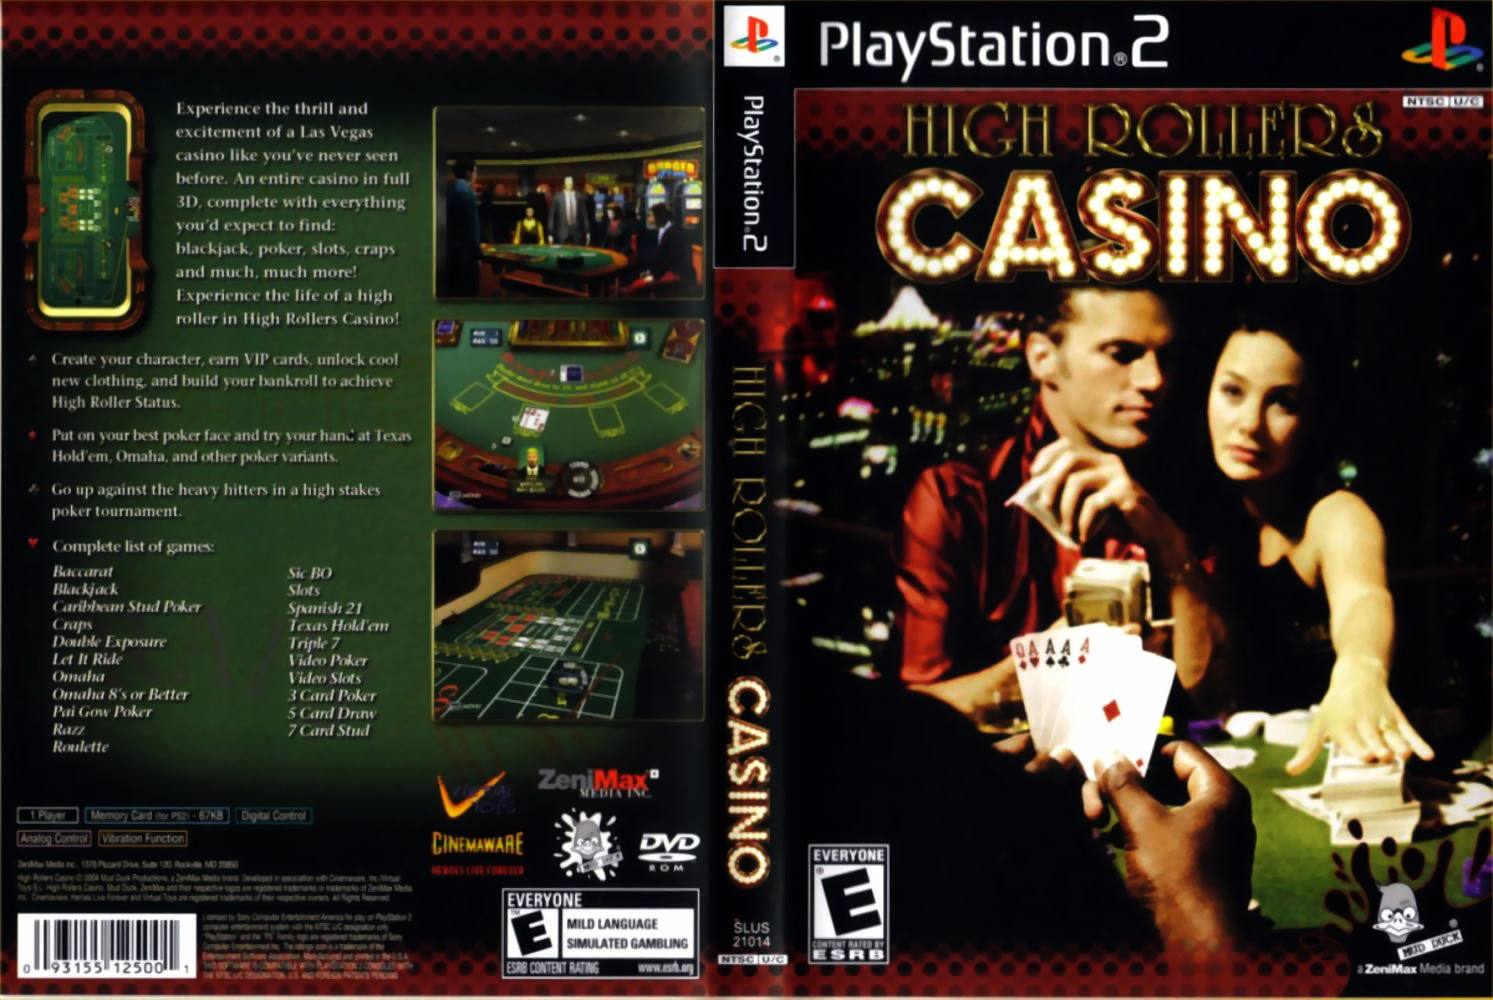 watch casino online free 1995 book of rah